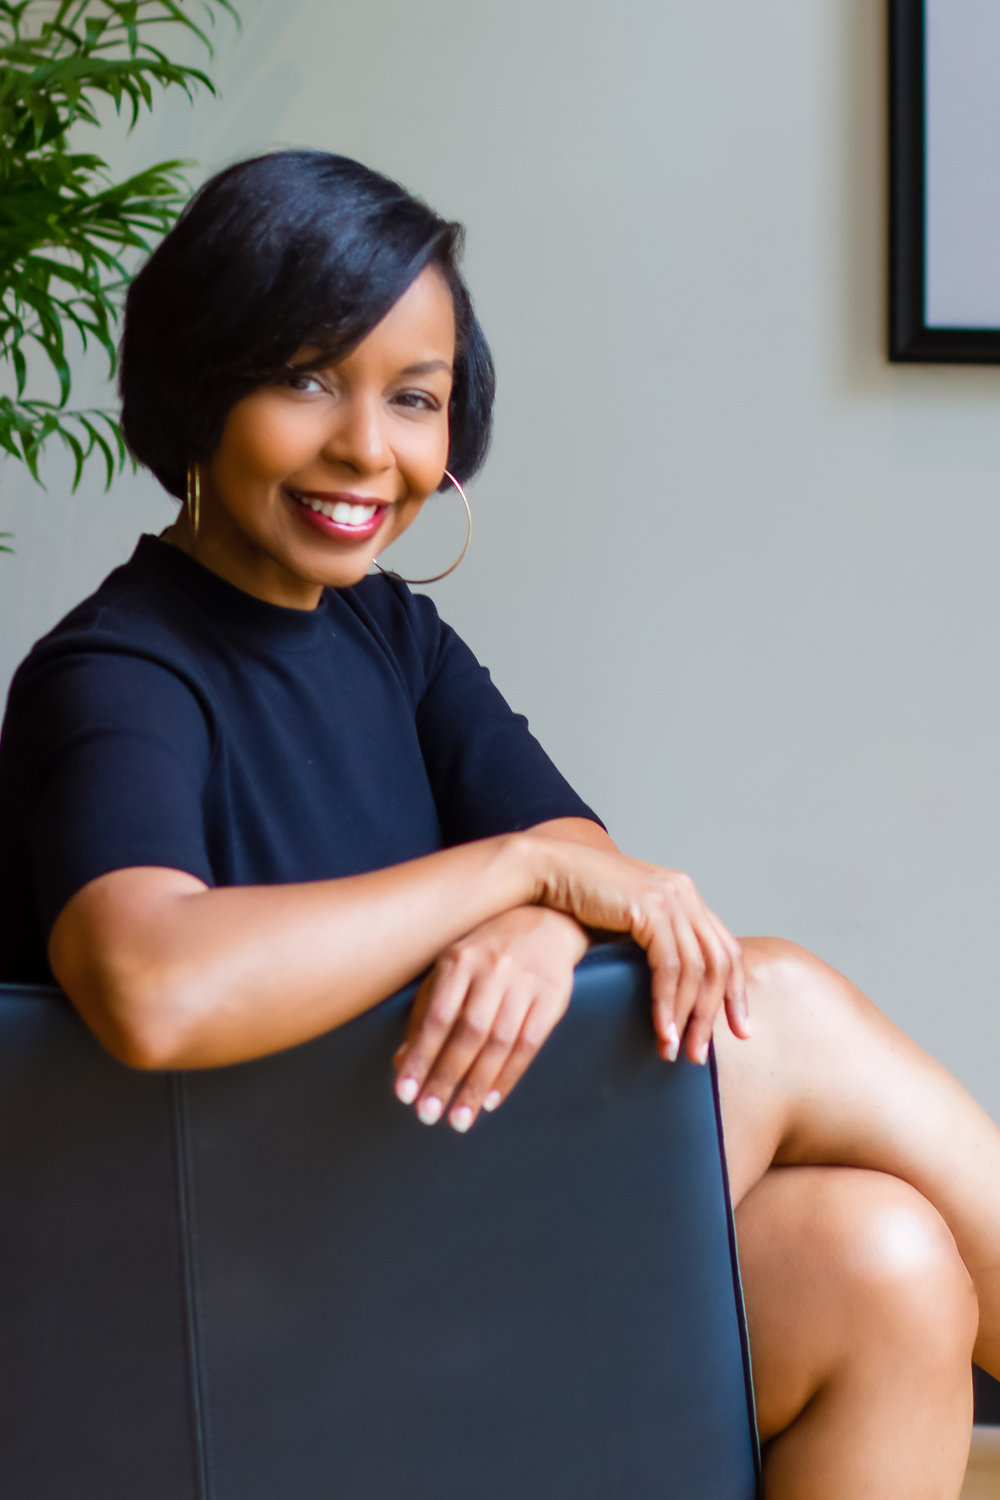 Hello,  Let's discuss how I can help you build and grow the brand you have envisioned. I look forward to speaking to you soon.   Charlene Castellanos -